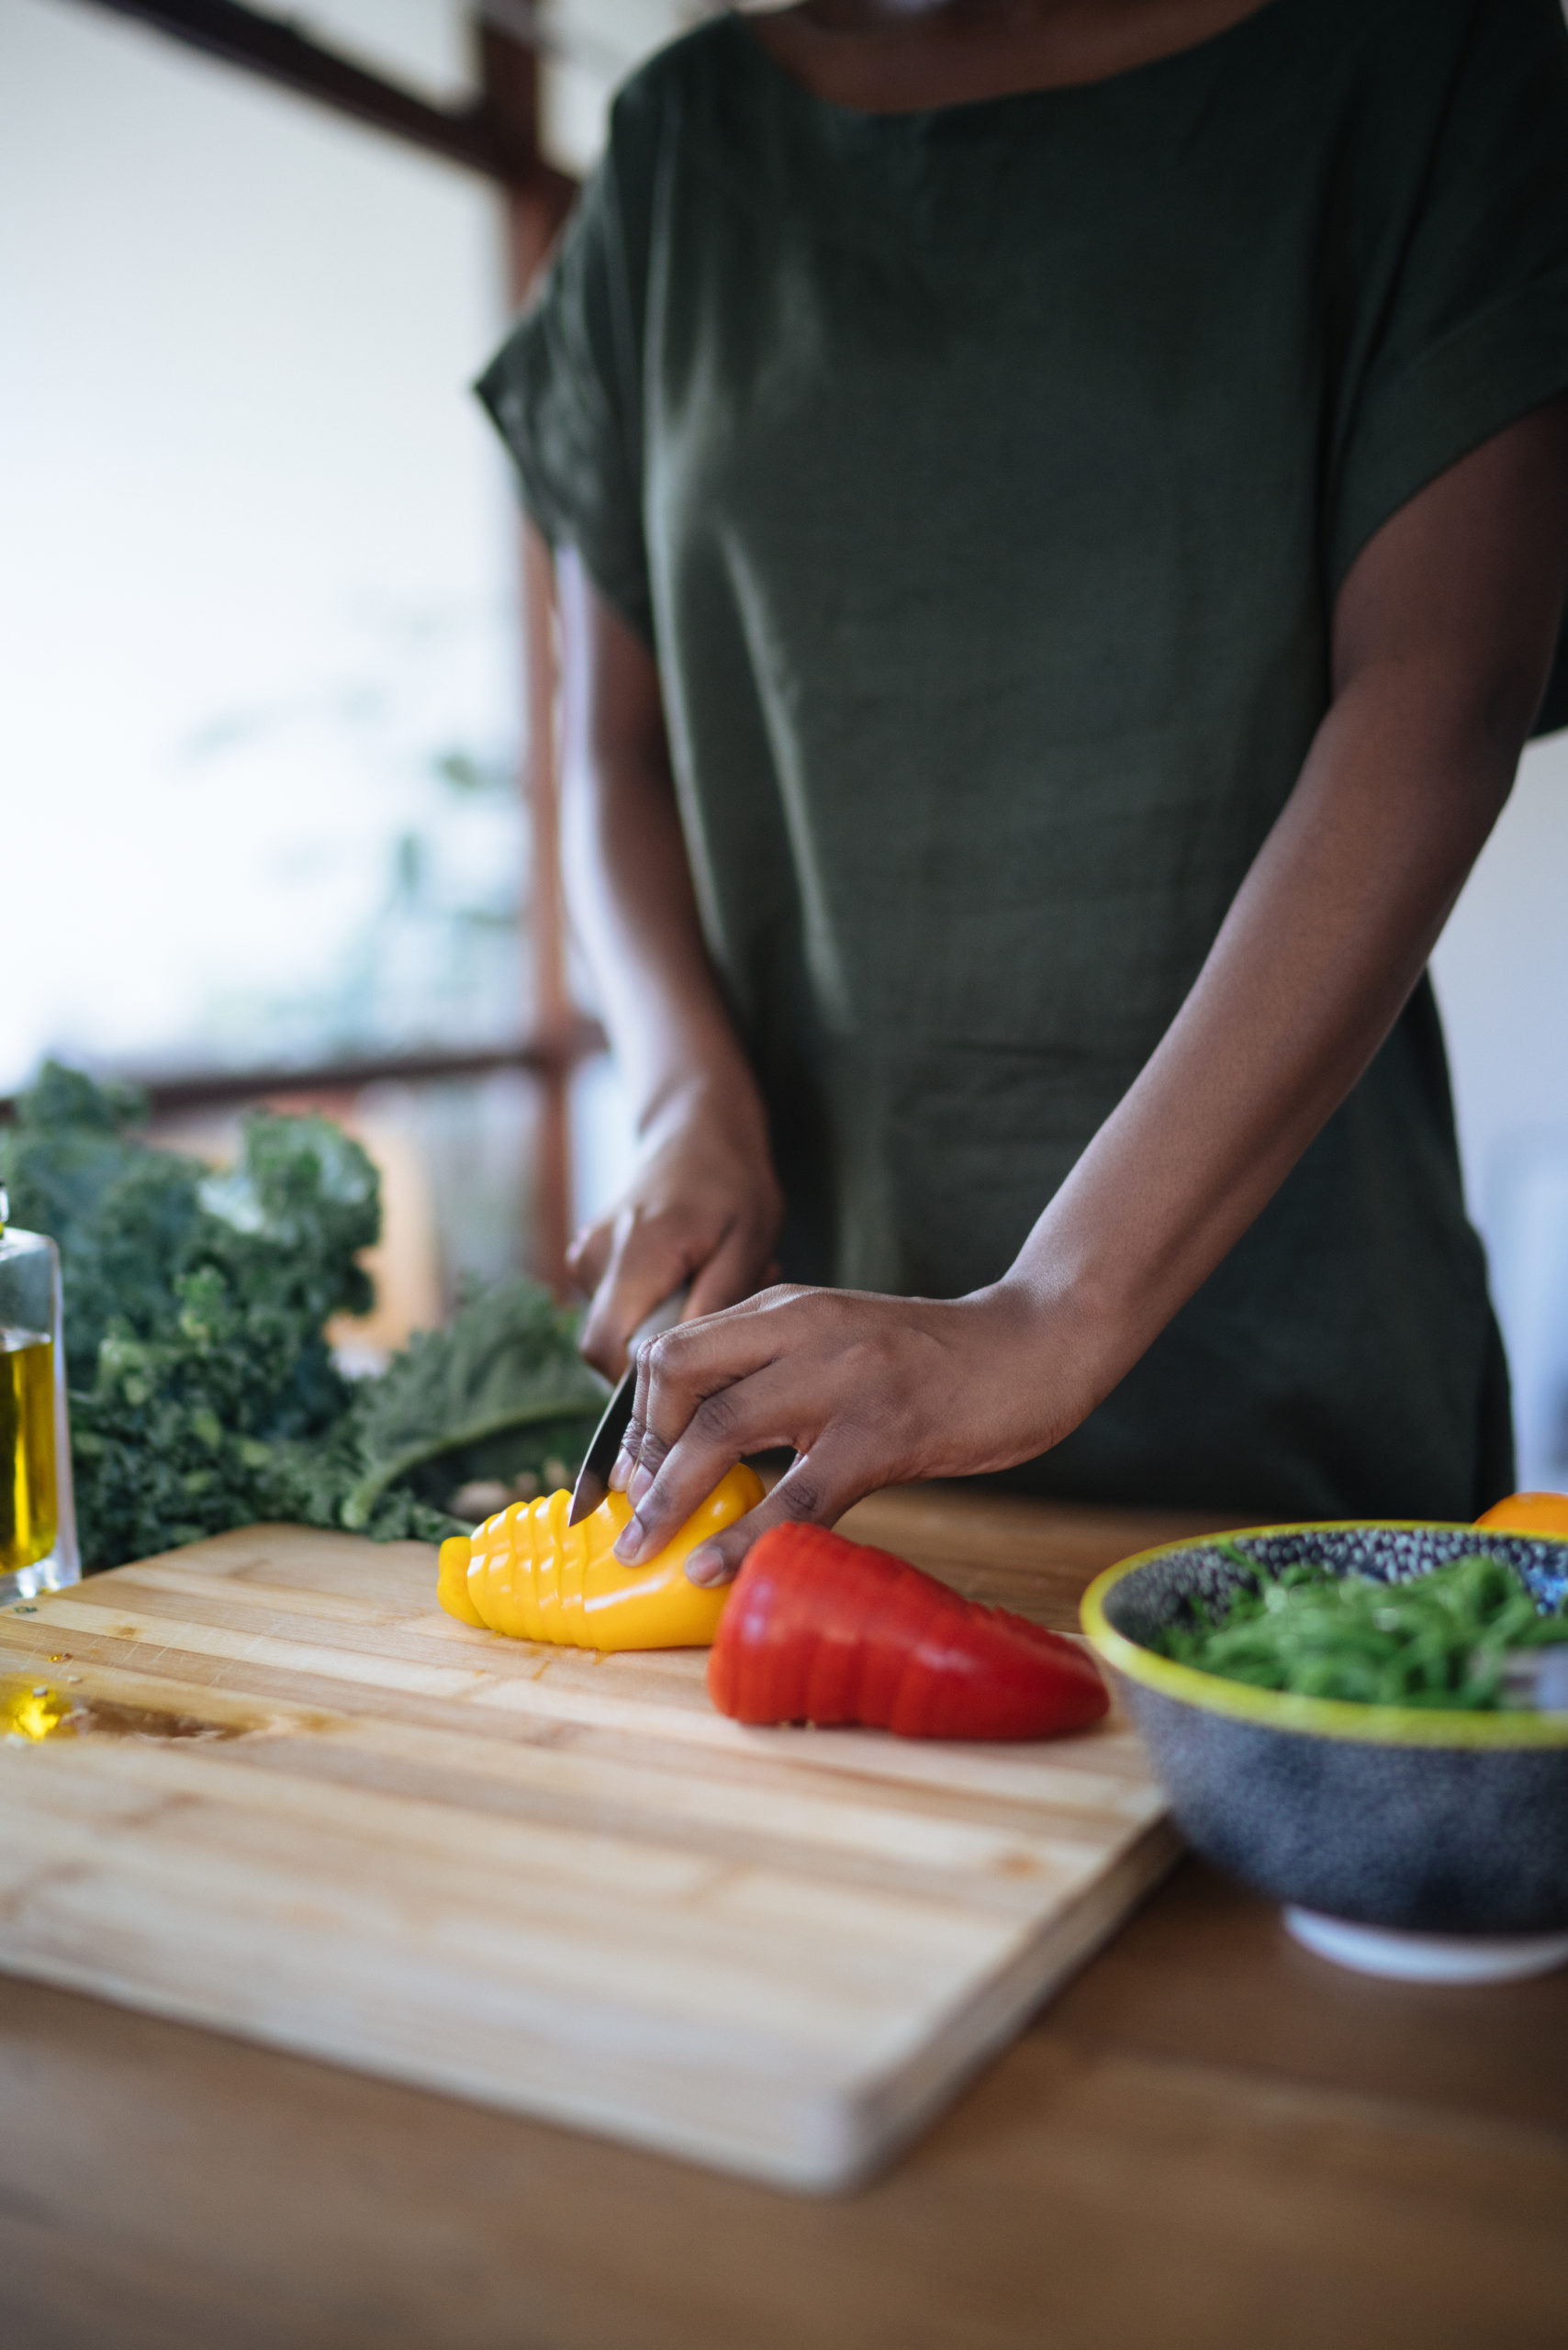 photo-of-person-cutting-bell-peppers-3621212